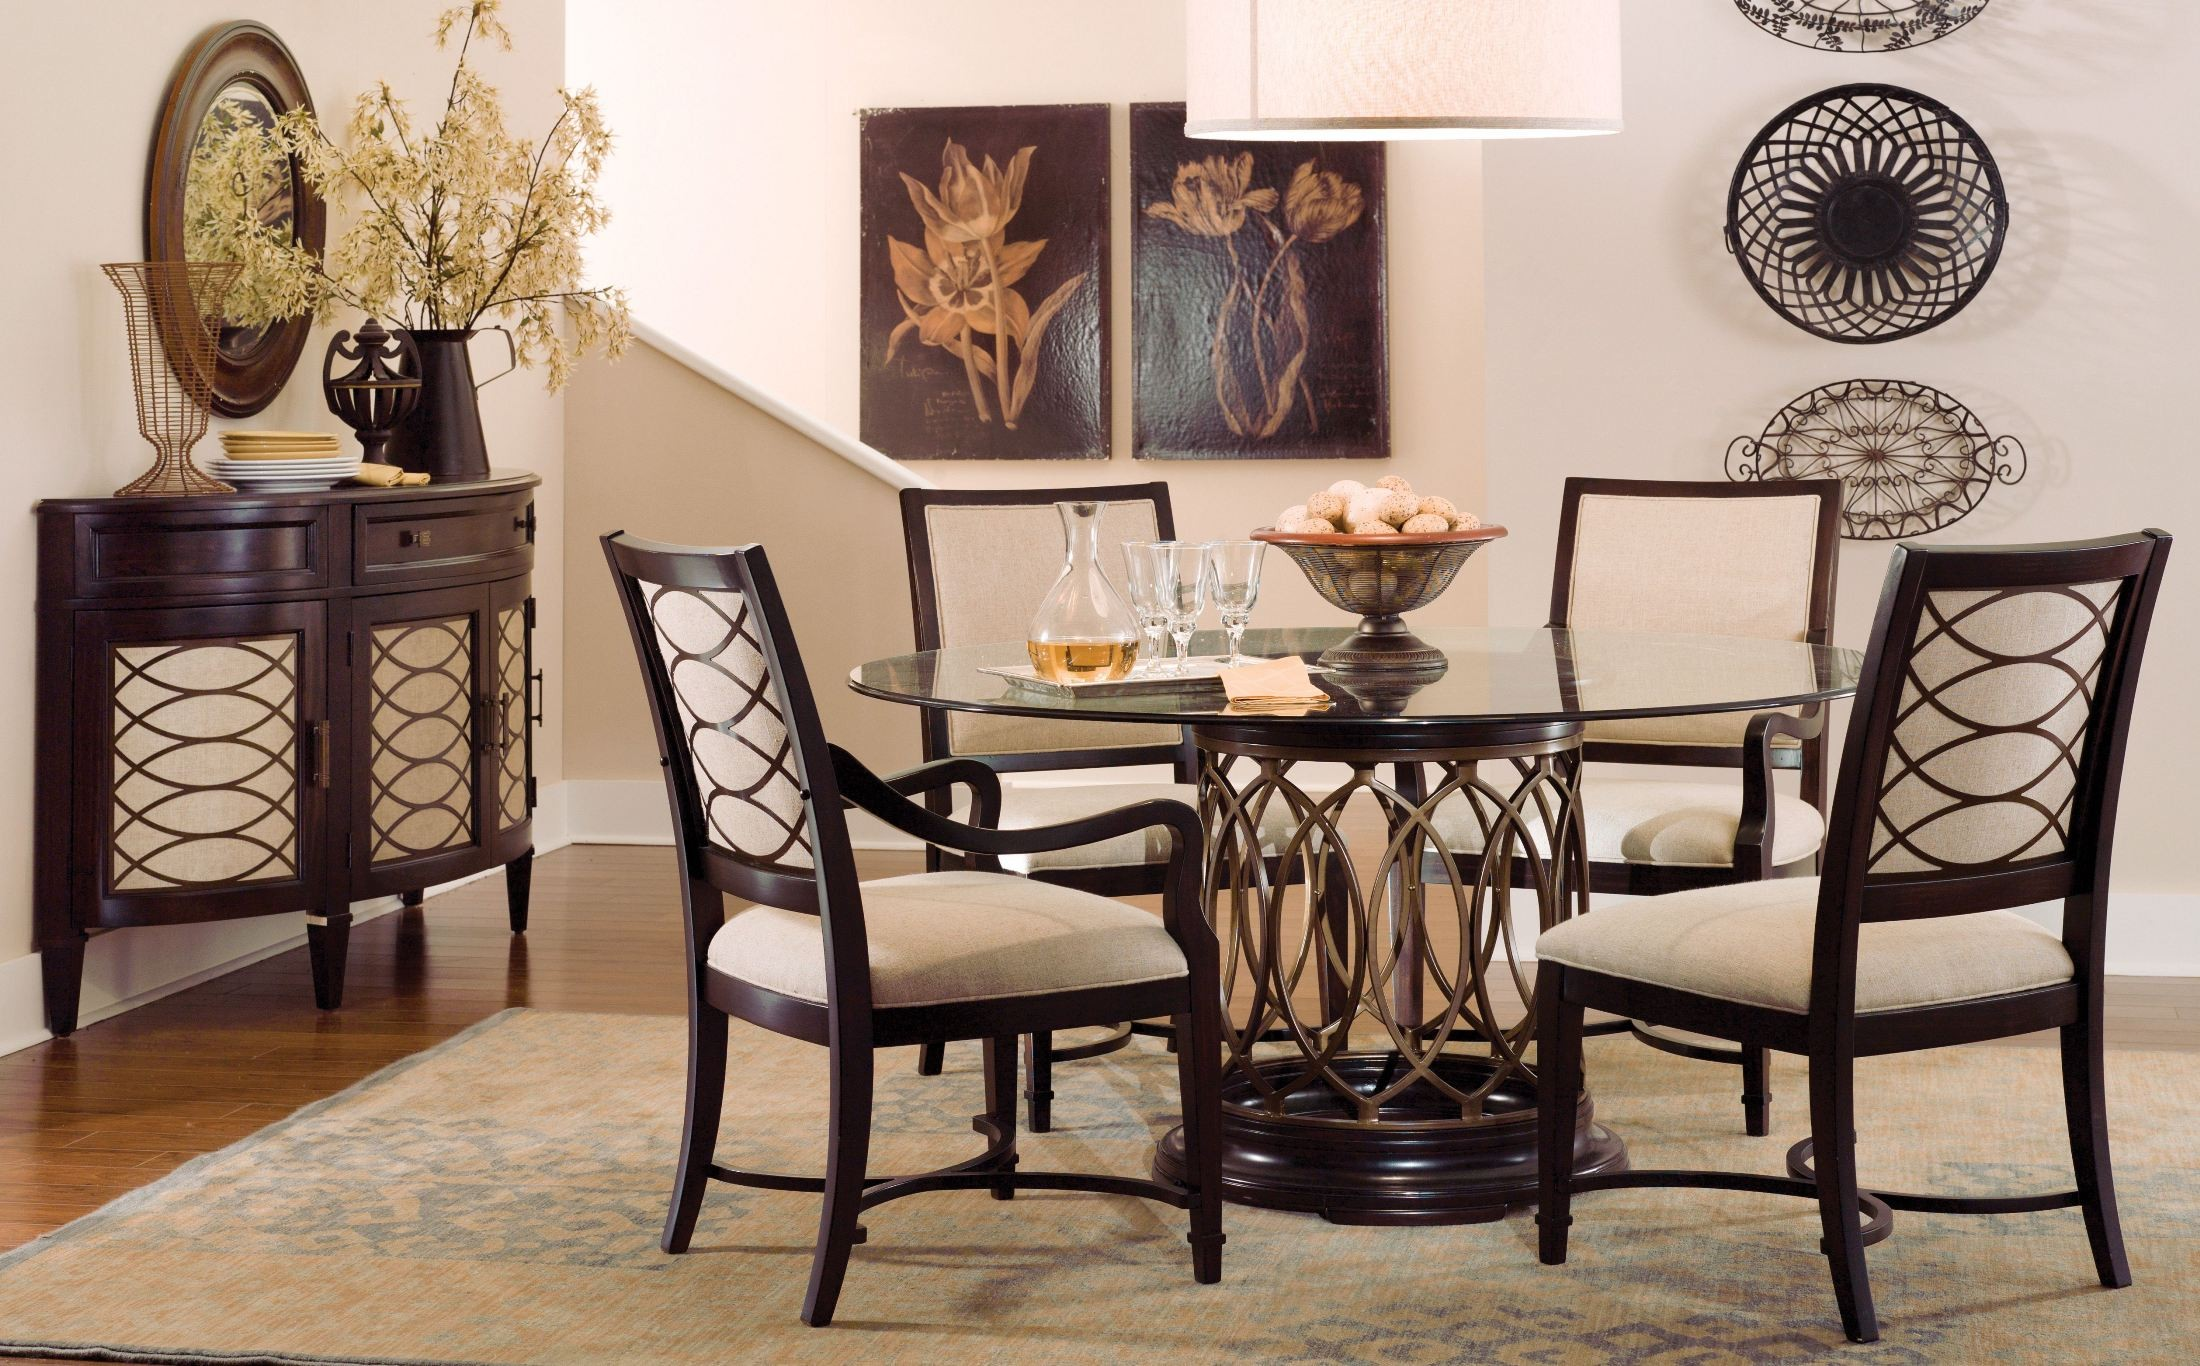 Intrigue Round Glass Top Dining Room Set from ART 161224